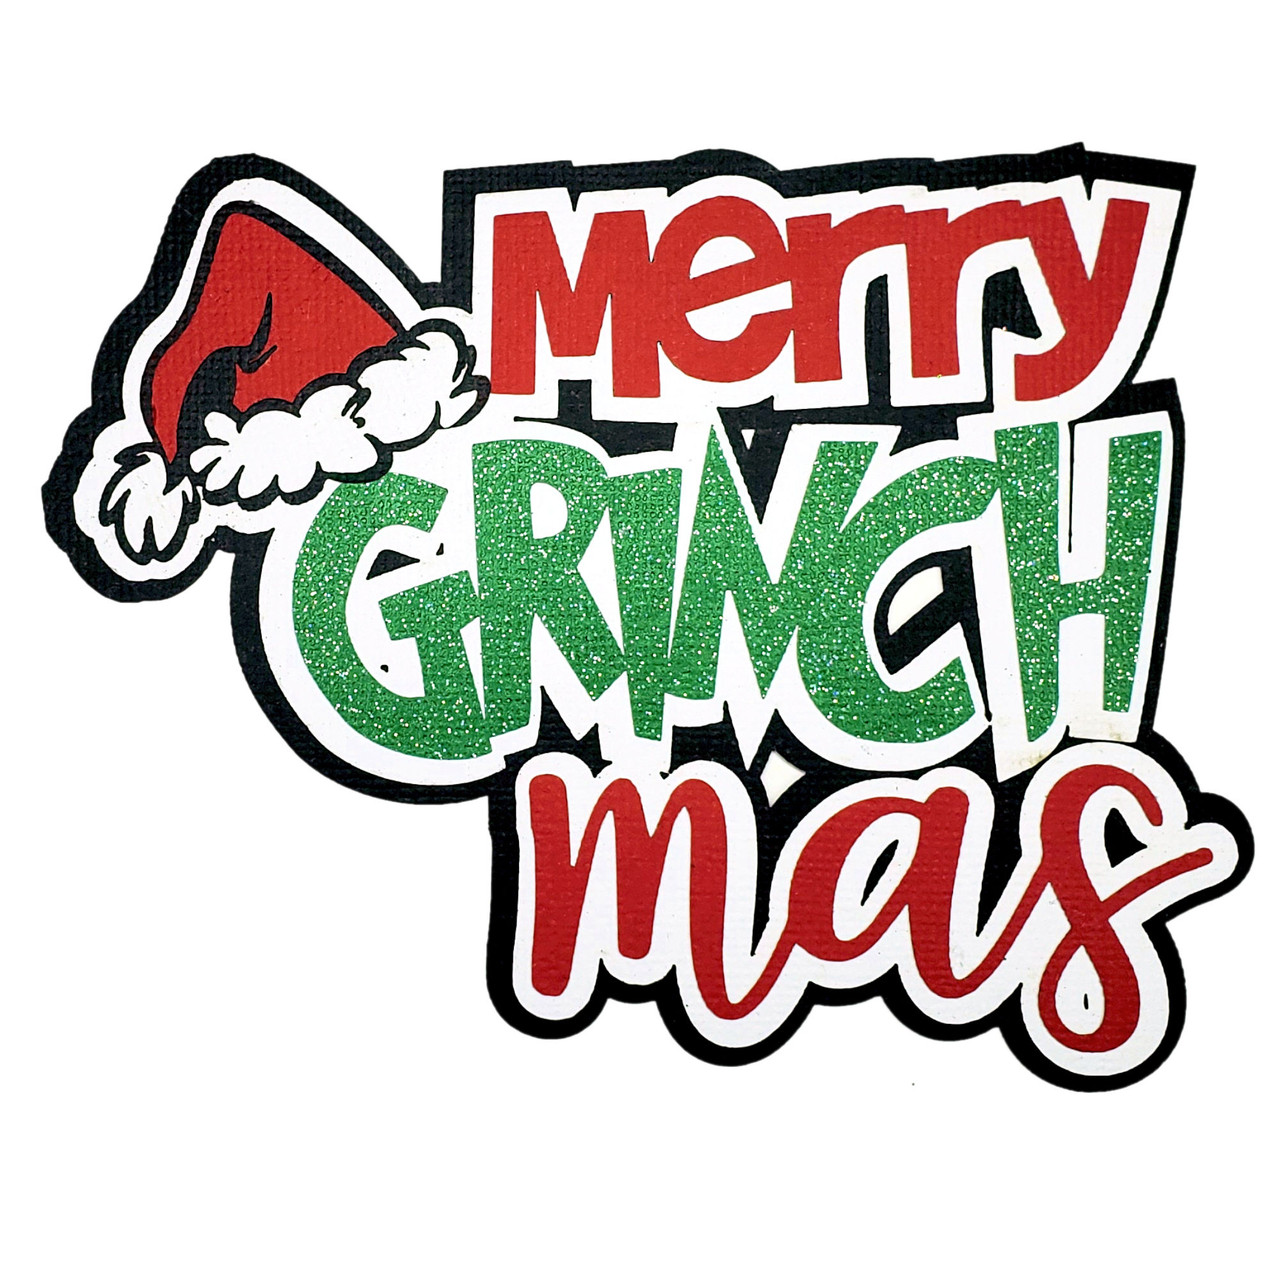 Merry Grinchmas 4 x 5 Title Fully-Assembled Laser Cut Scrapbook Embellishment by SSC Laser Designs